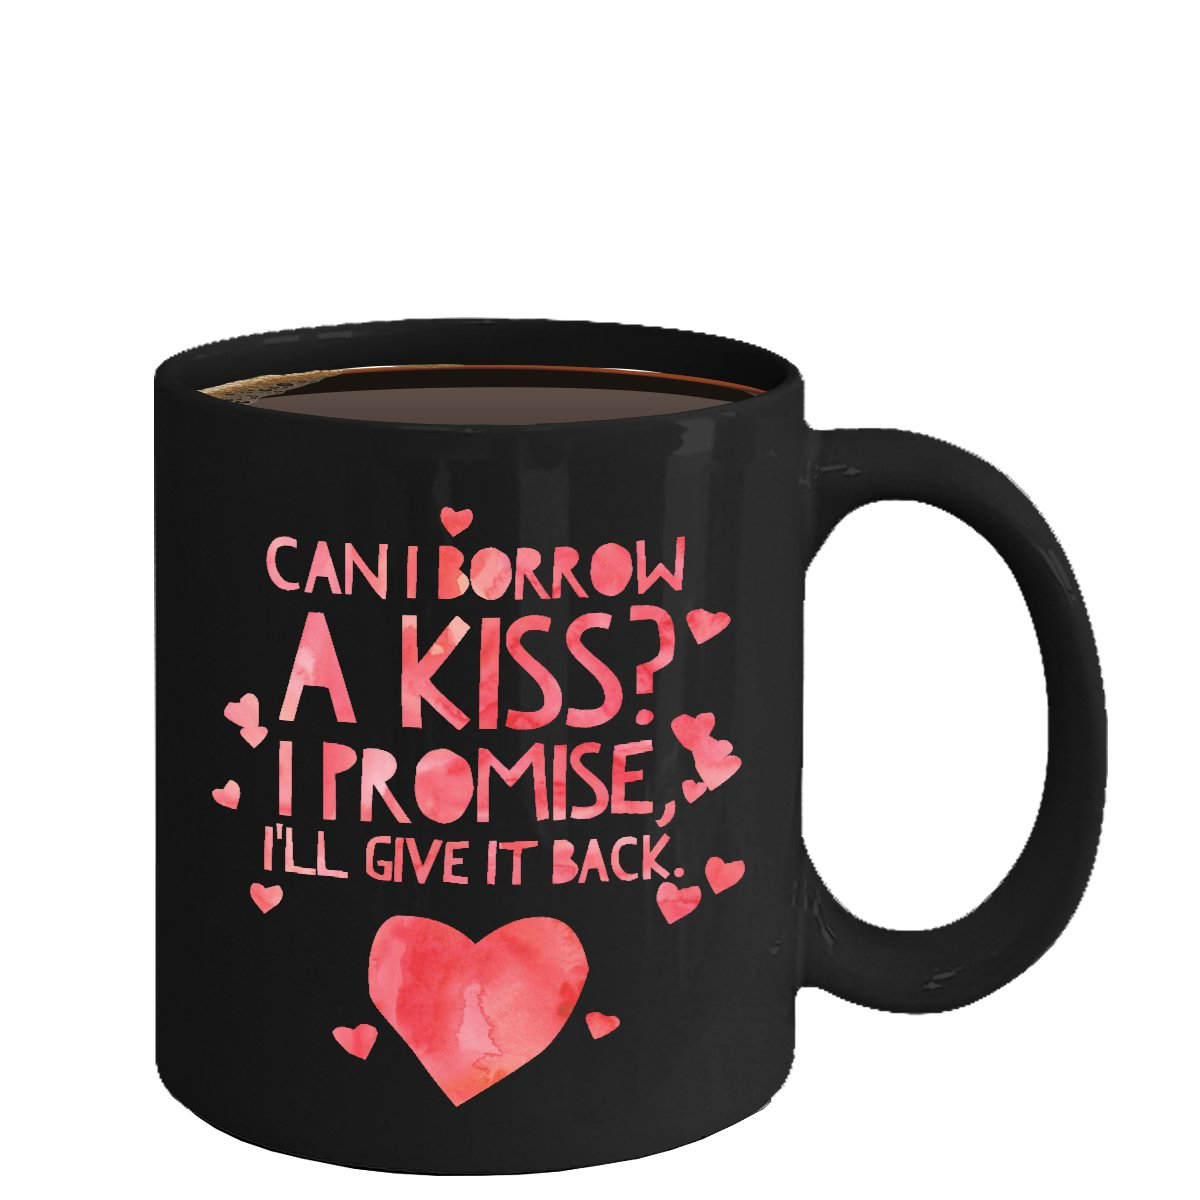 Love Ceramic Coffee Mug - Can I Borrow a Kiss - Cute Large Cup (Black) - Best Gift for Men, Women